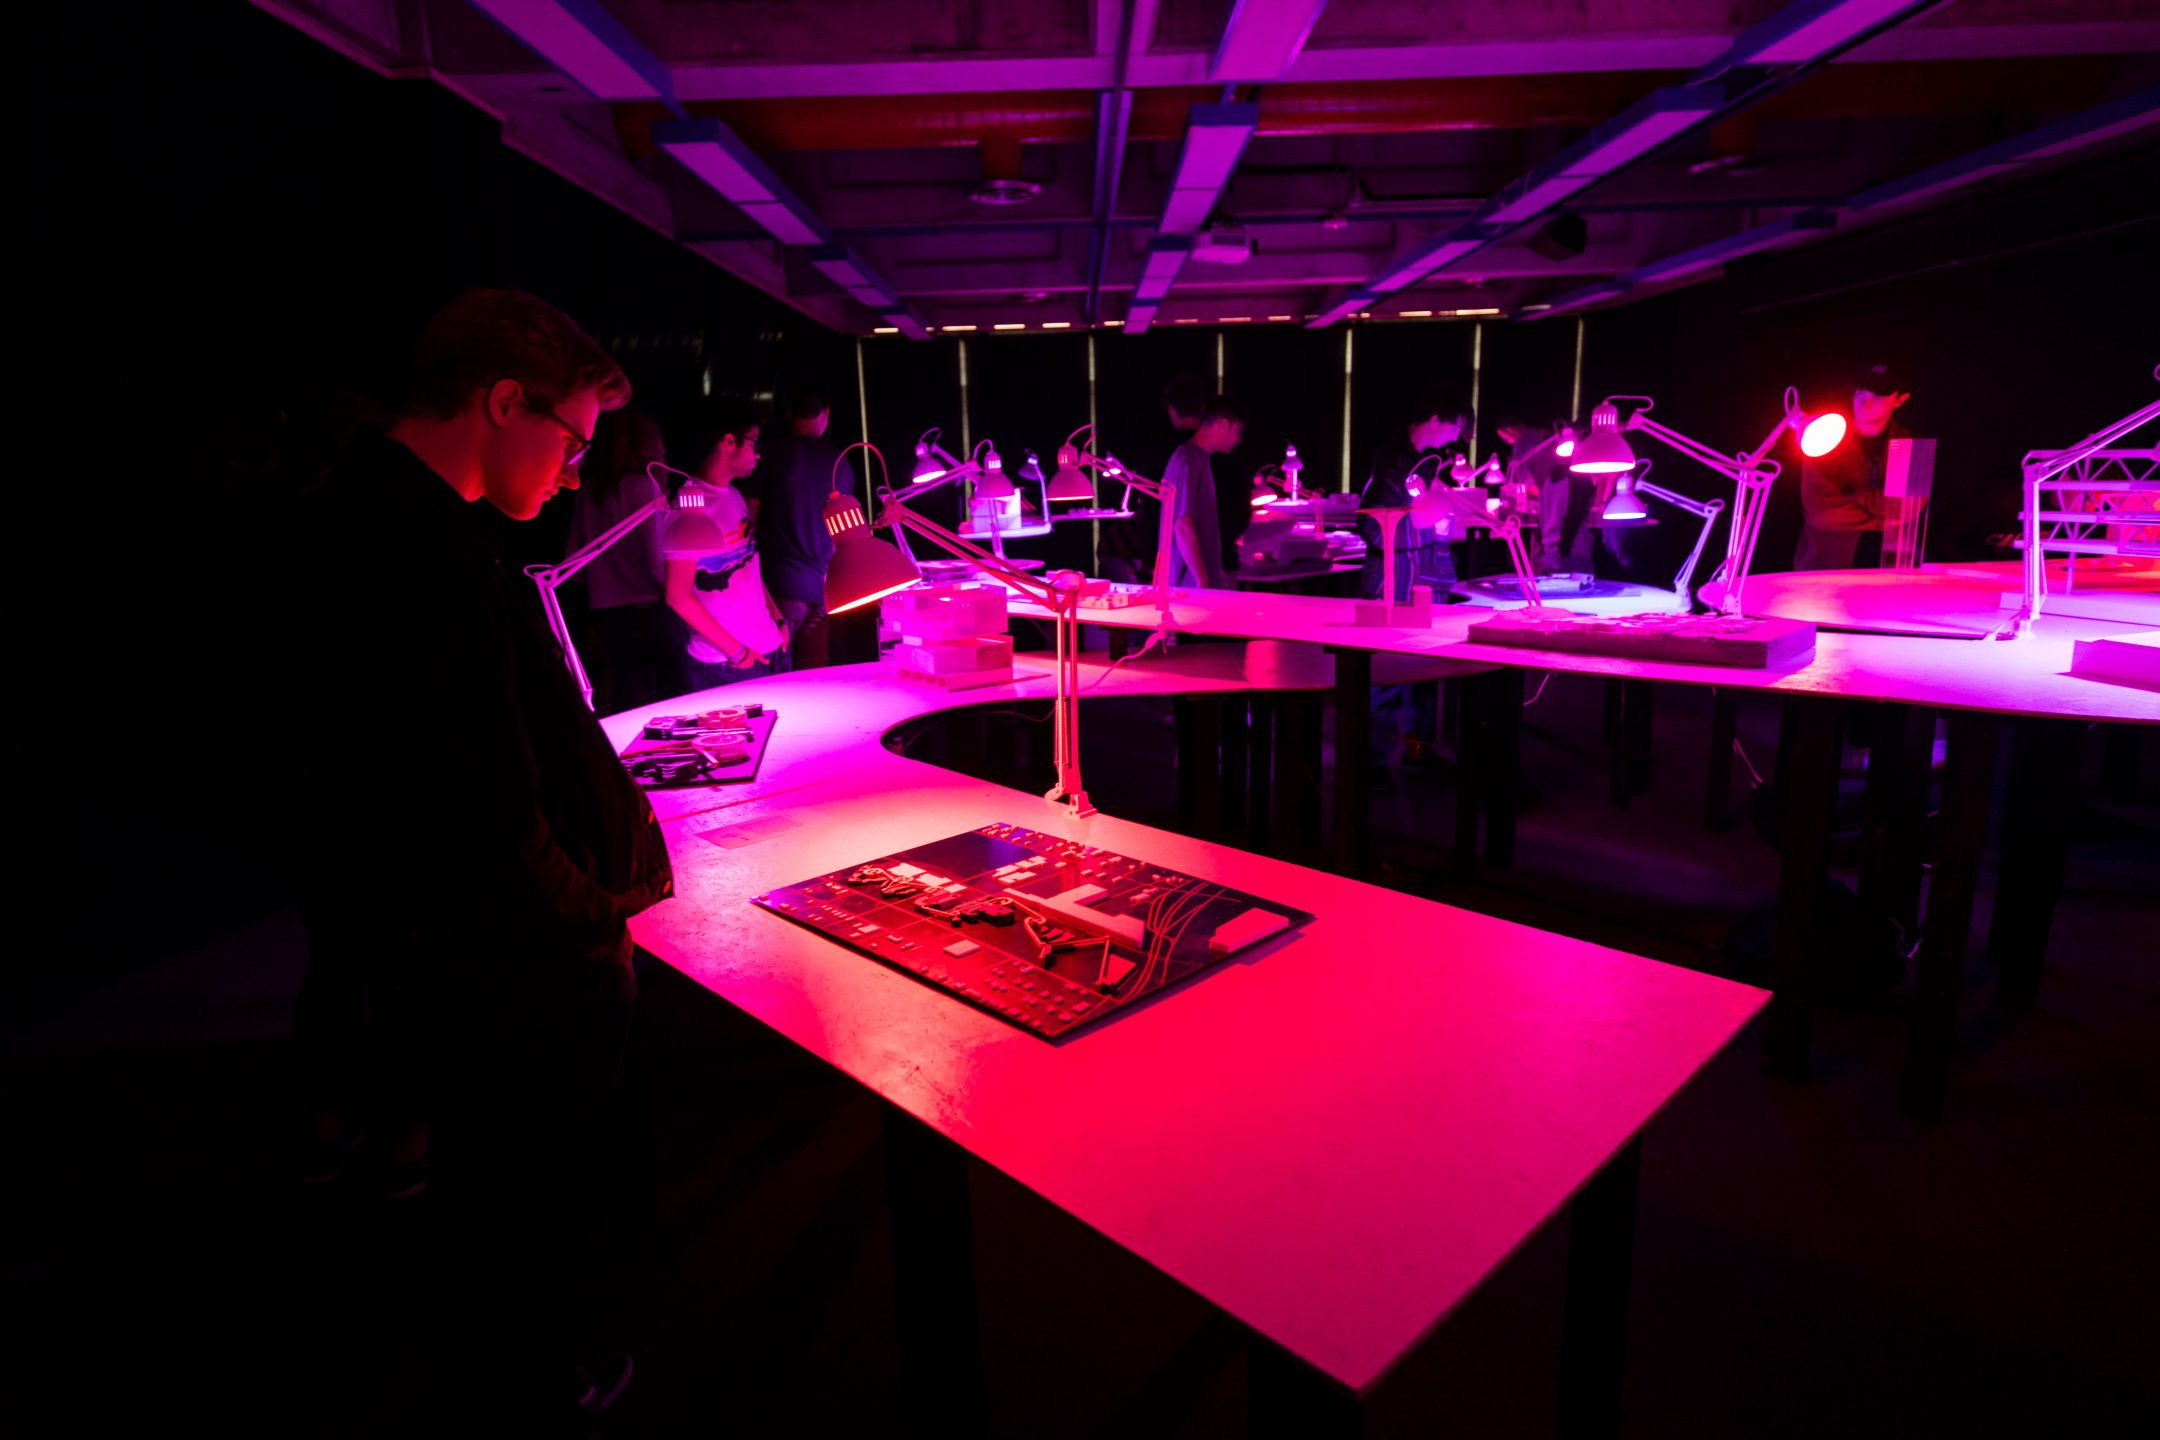 """Students observe architecture student models lit with pink and red lights at the senior showcase, """"Yours Truly."""""""